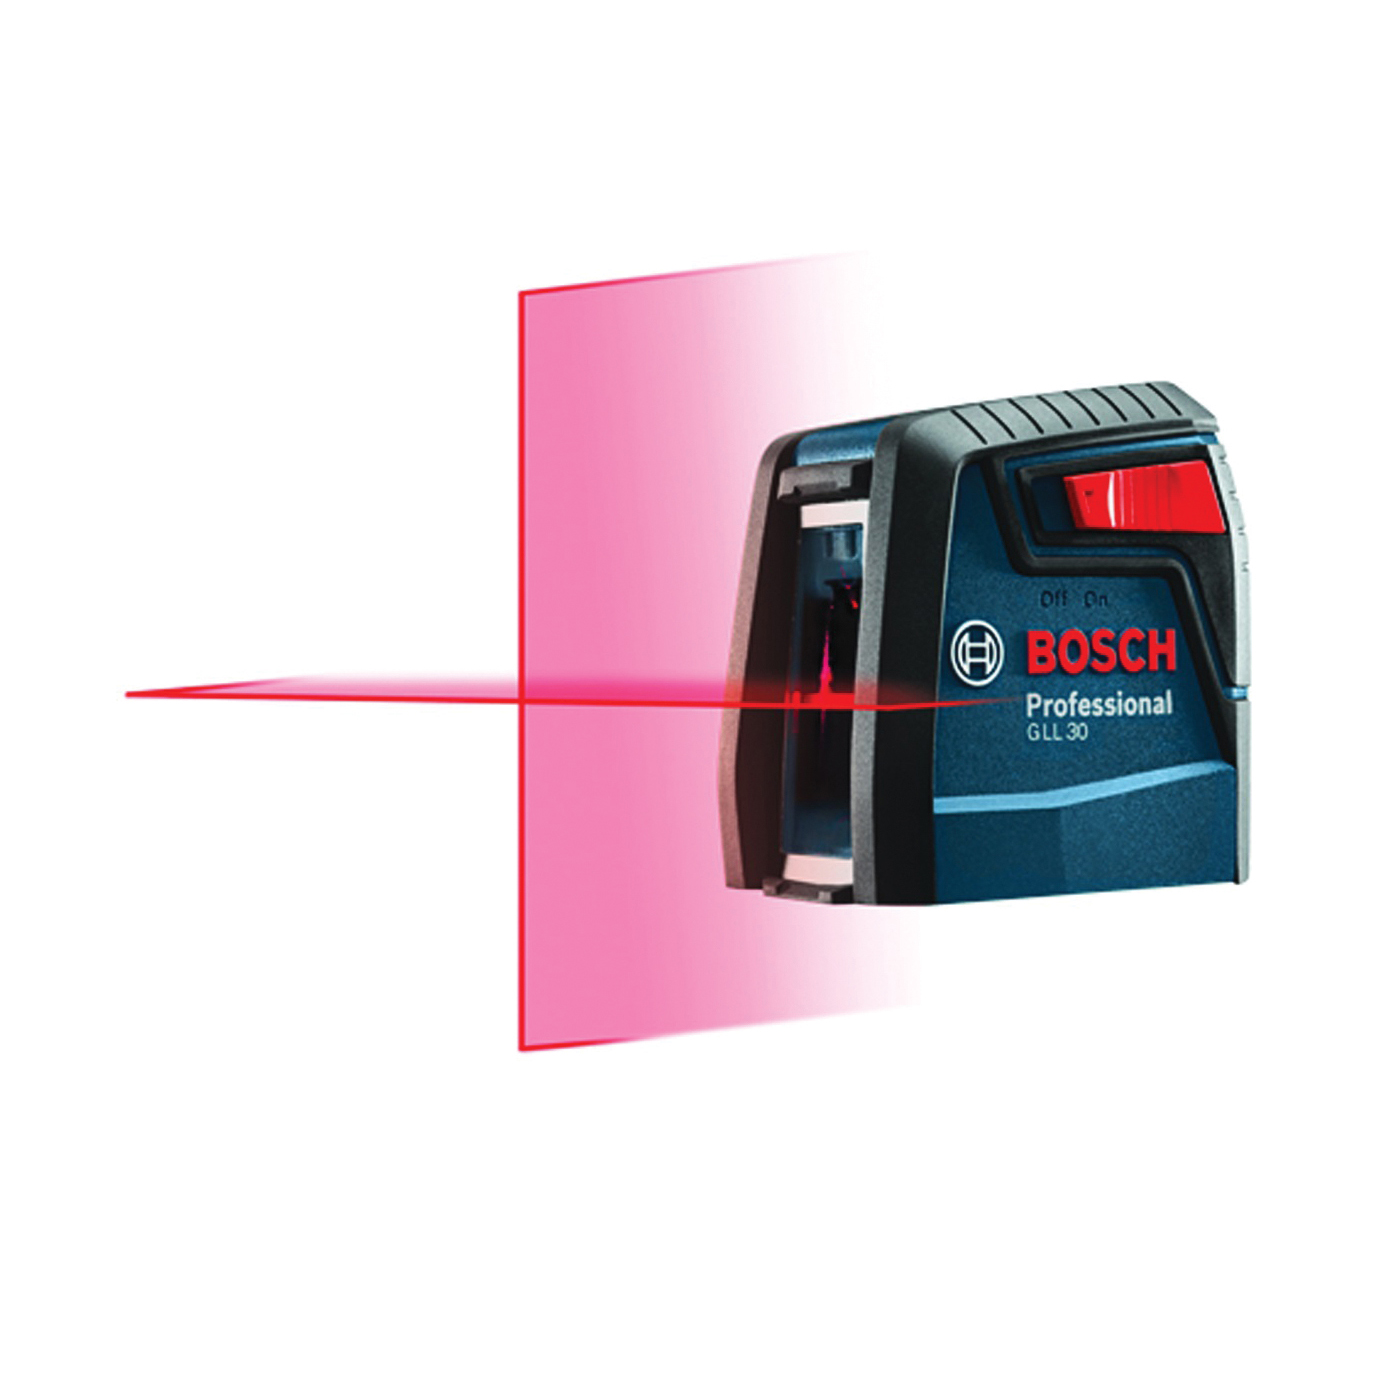 Picture of Bosch GLL 30 Cross-Line Laser, 30 ft, +/-5/16 in at 30 ft Accuracy, 2 -Line